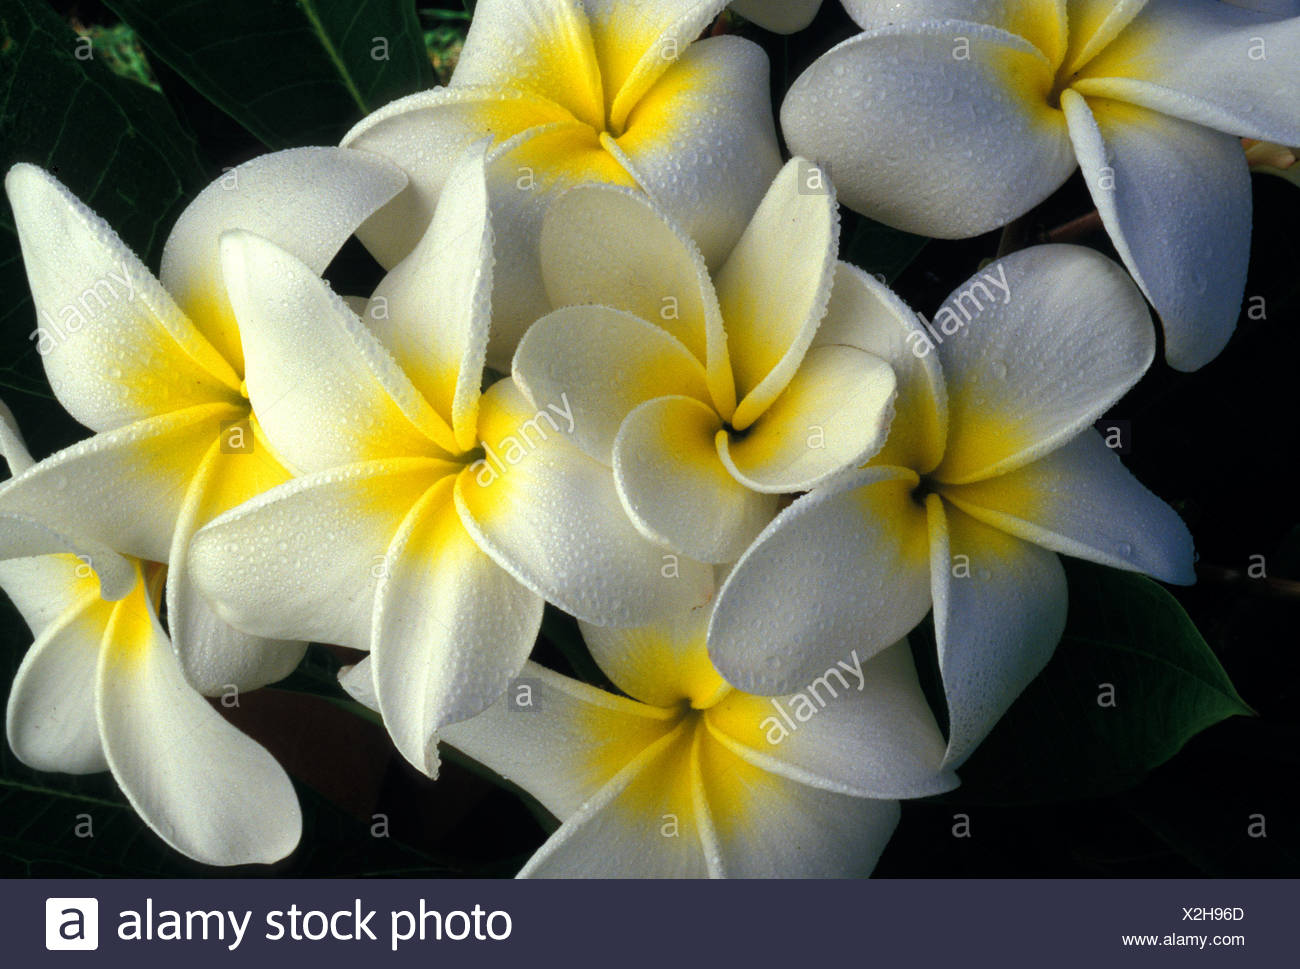 Lovely and fragrant plumeria flowers also known as frangipani lovely and fragrant plumeria flowers also known as frangipani apocynaceae are found throughout the hawaiian islands this izmirmasajfo